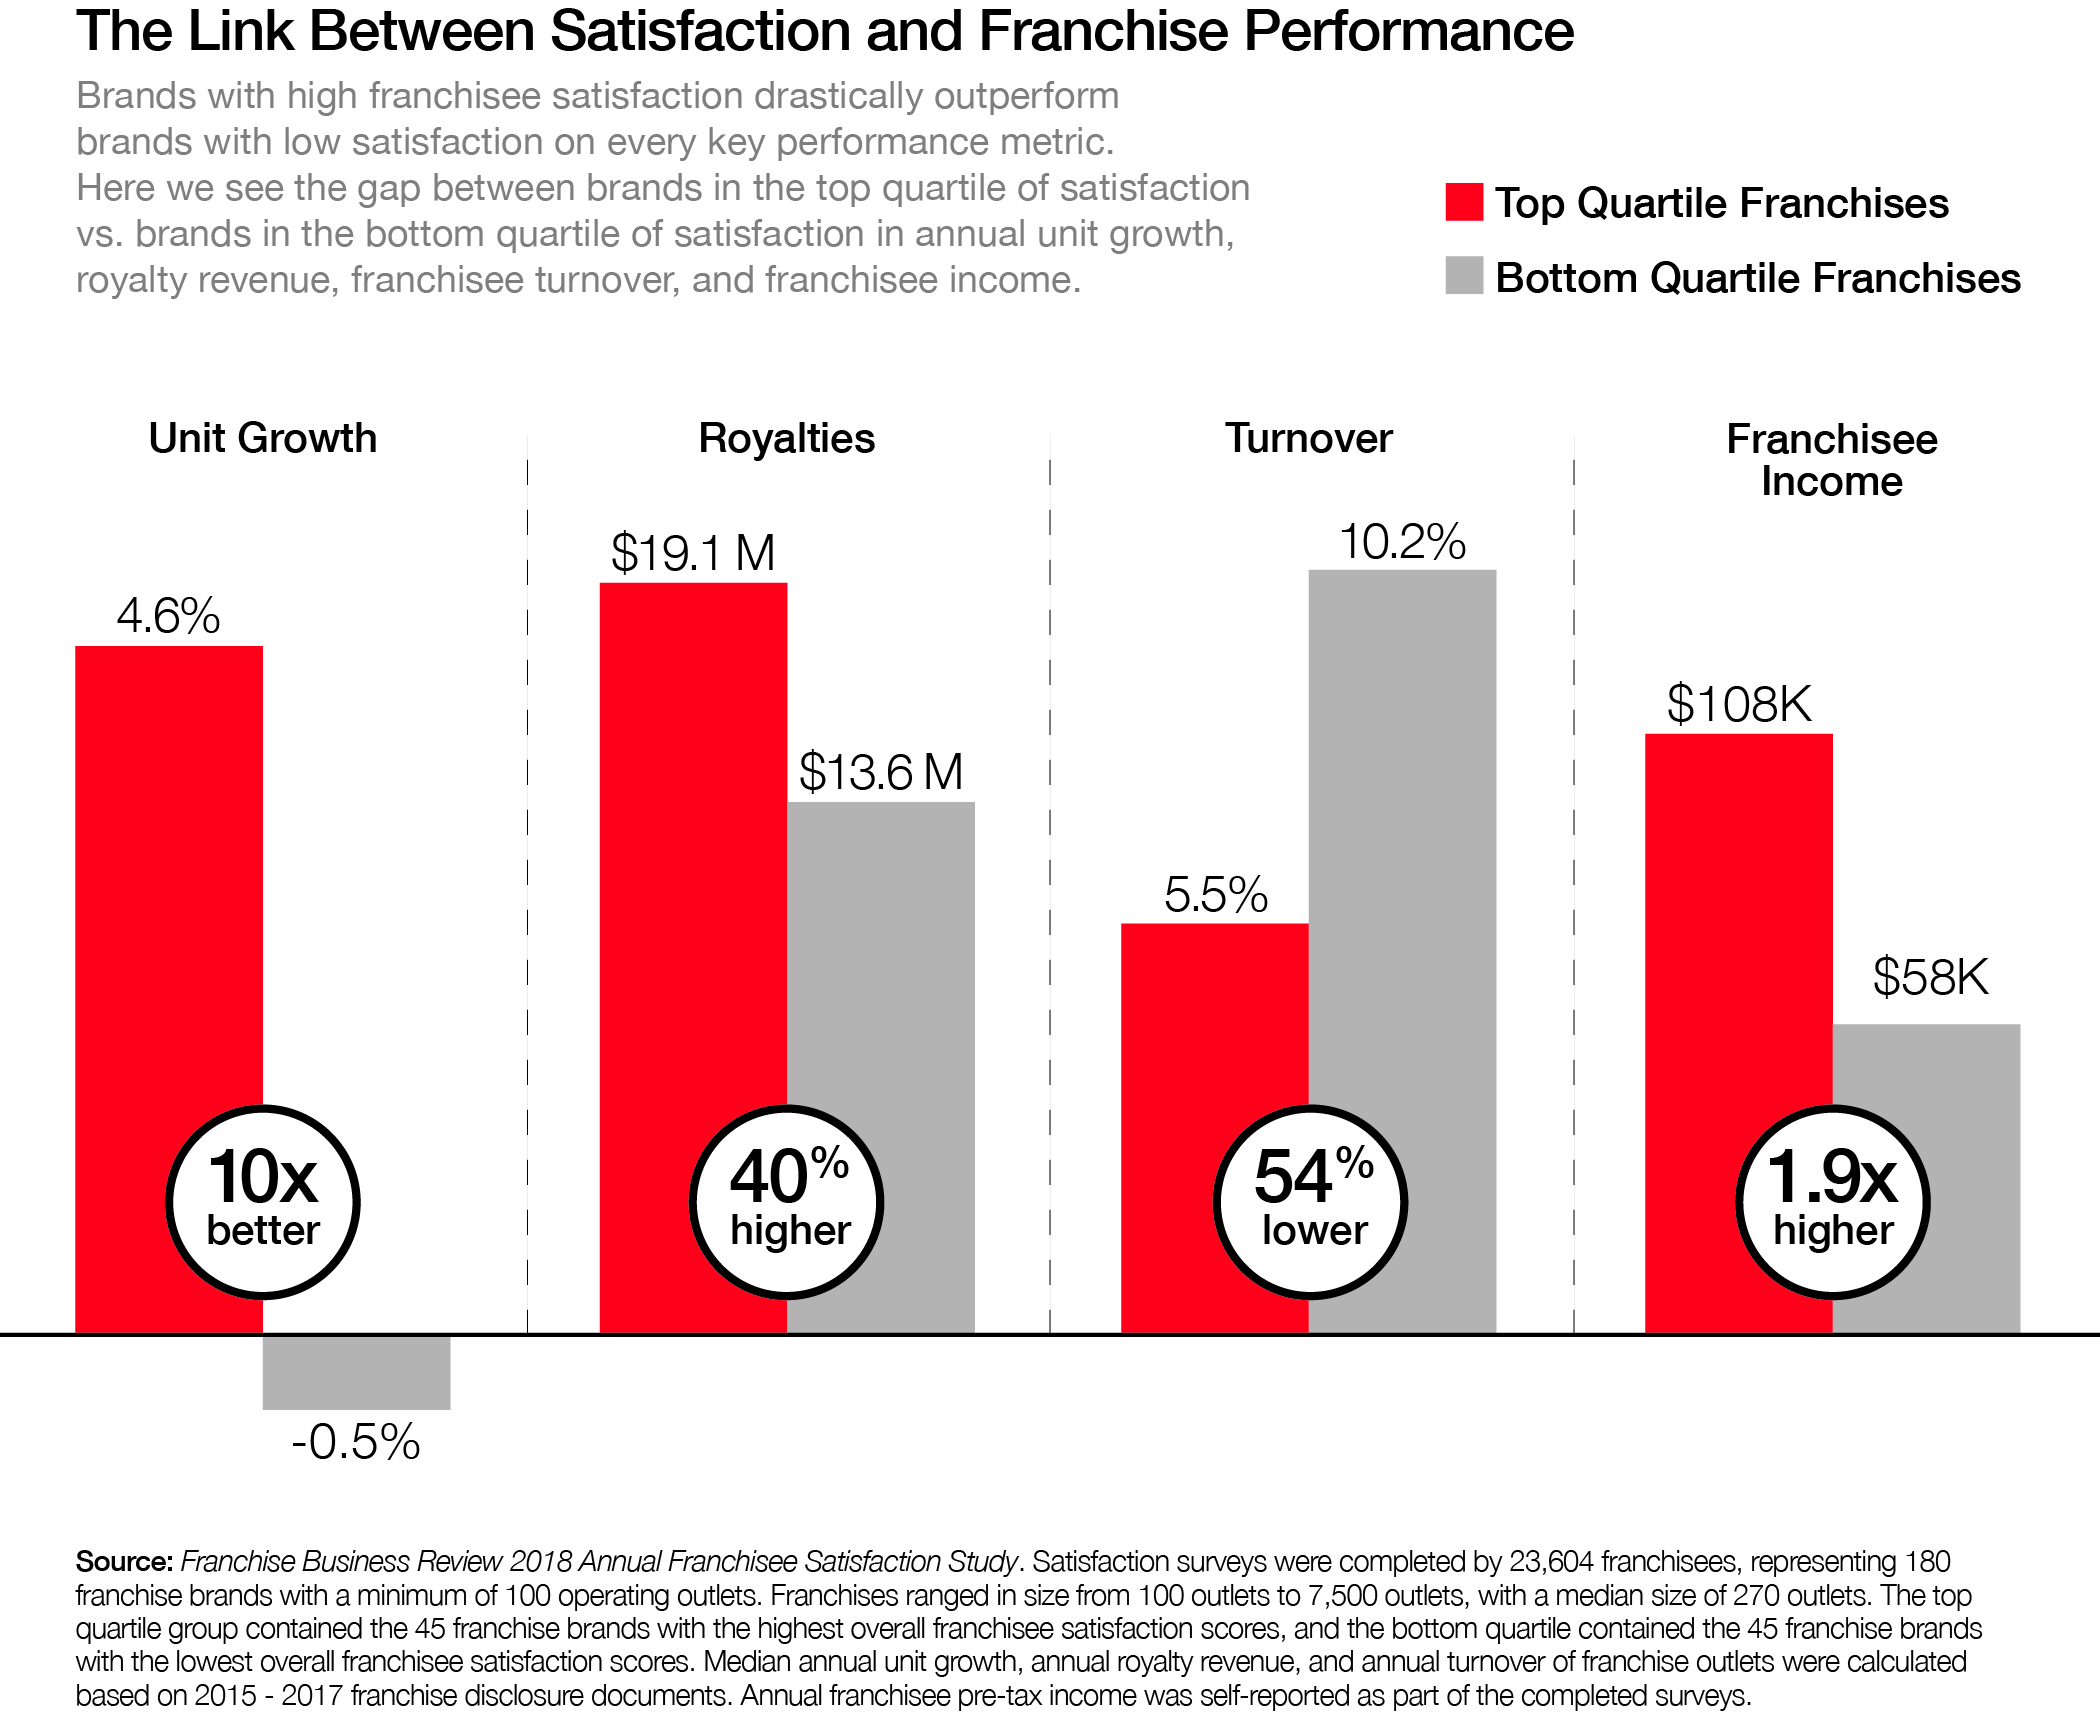 Link Between Satisfaction and Franchise Performance